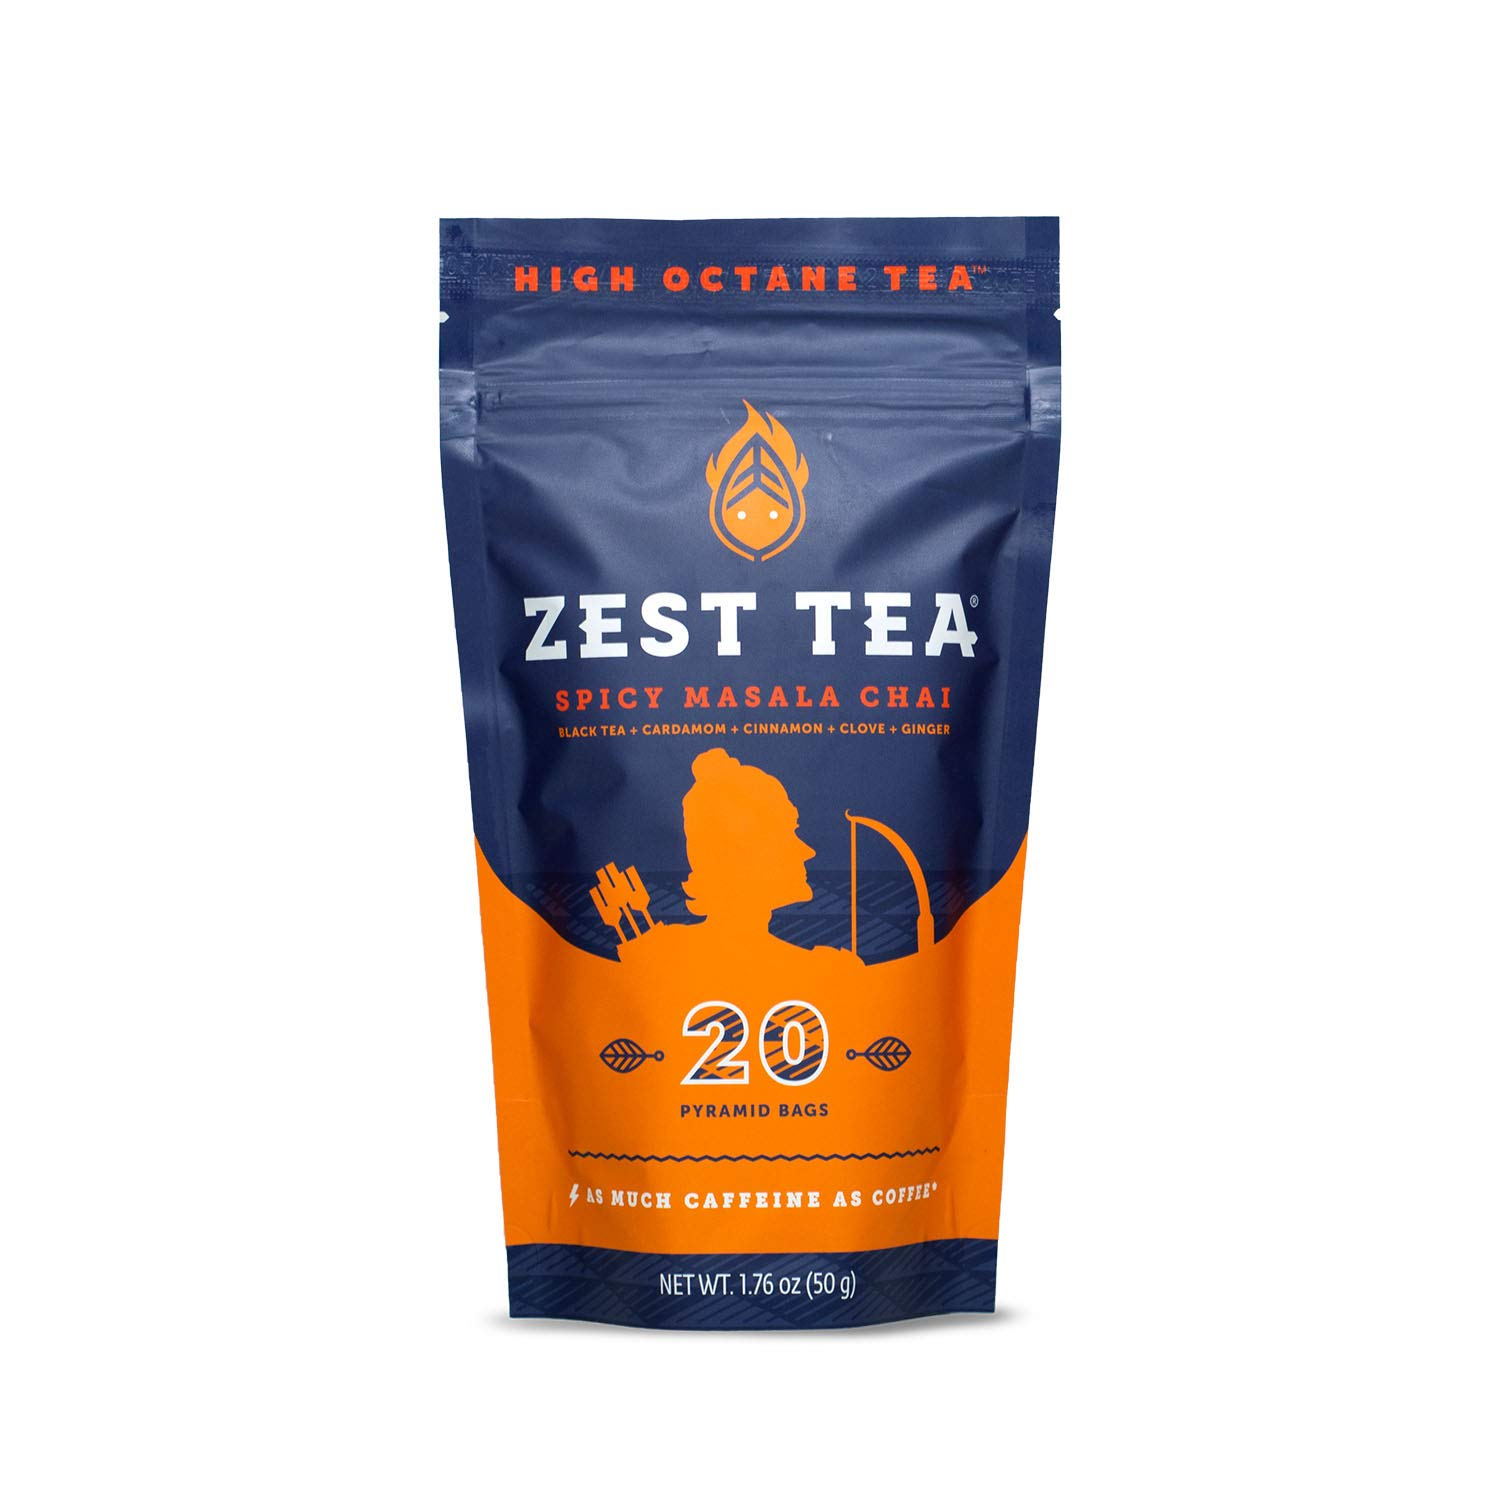 Zest Tea Premium Energy Hot Tea, High Caffeine Blend Natural & Healthy Traditional Coffee Substitute, Perfect for Keto, 150 mg Caffeine per Serving, Spicy Masala Chai Black Tea Pouch of 20 Sachet Bags